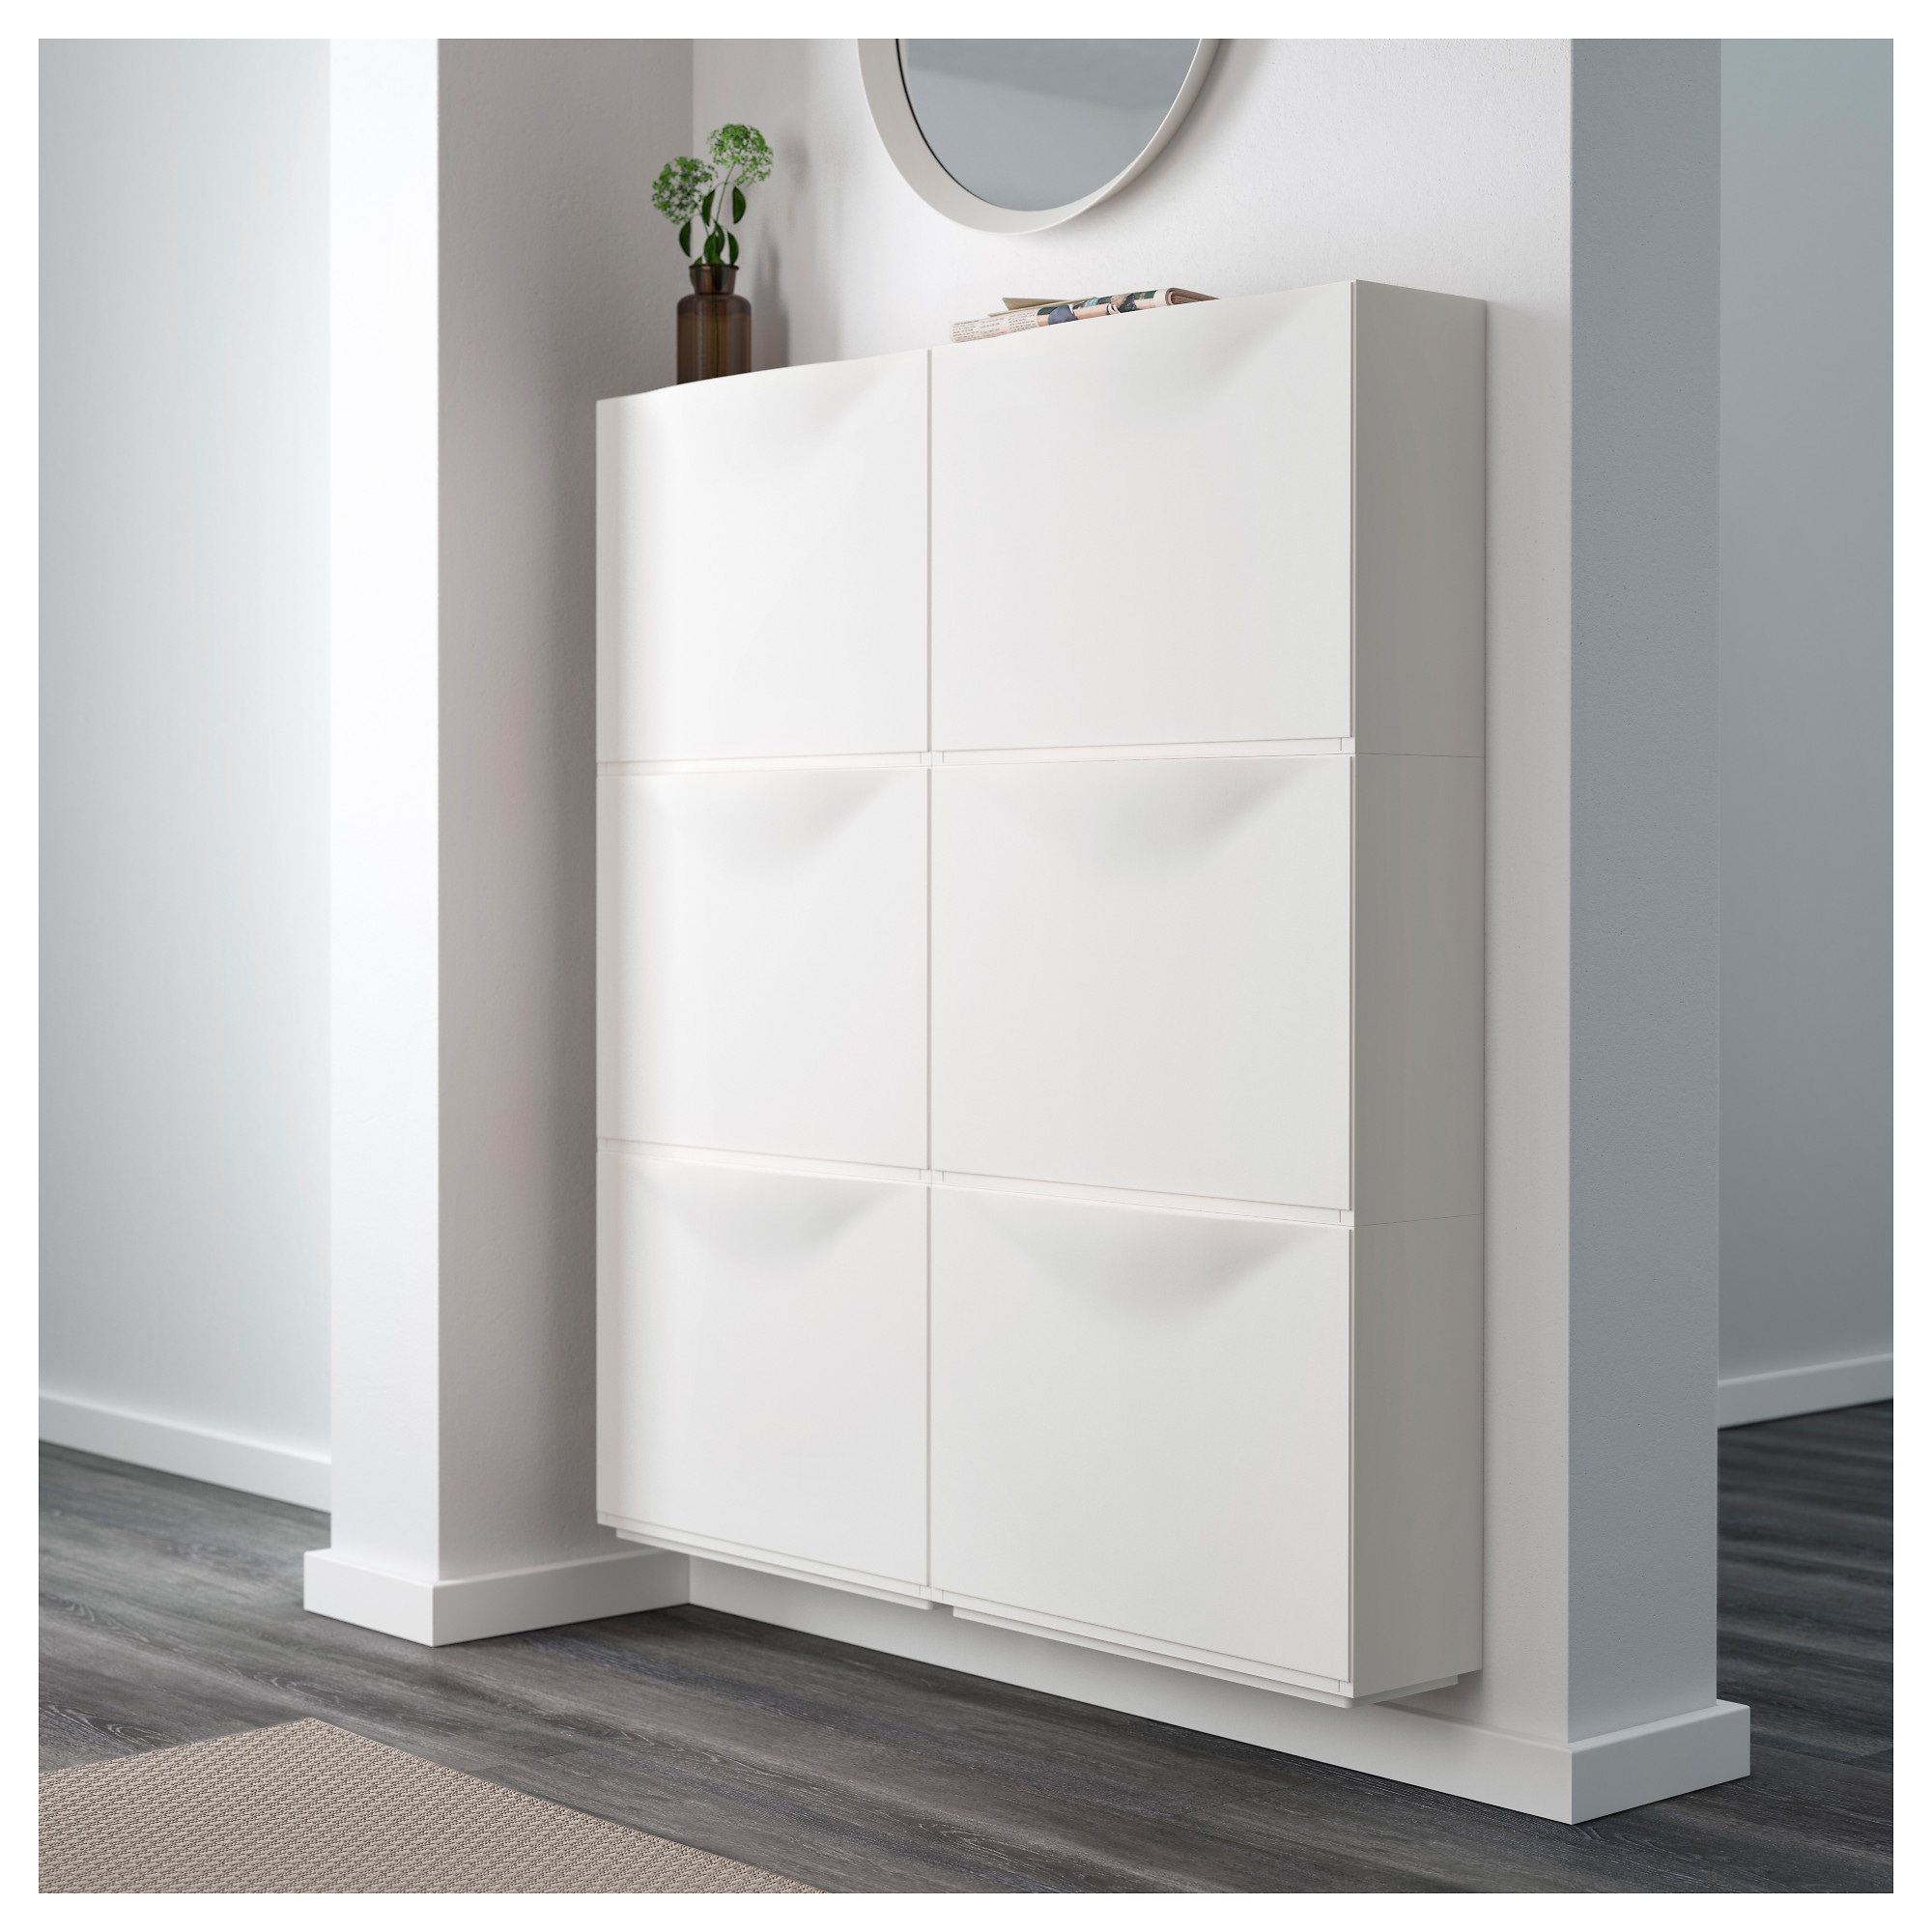 compartments en cabinet ikea cabinets shoe cm products storage white hemnes art small gb organisers with